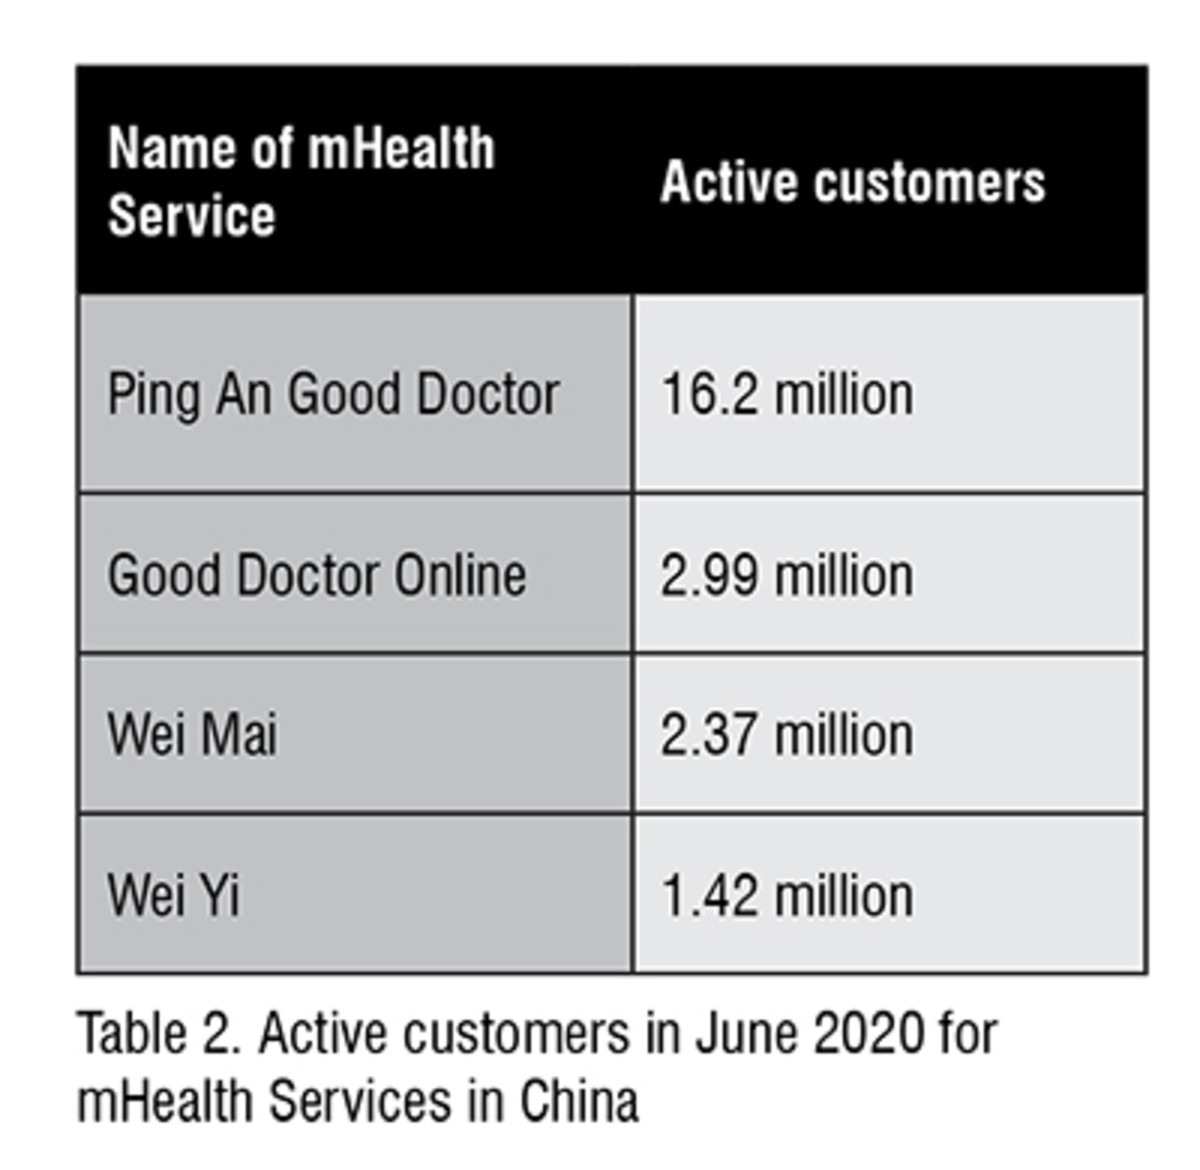 Active customers on mHealth in China by 2020